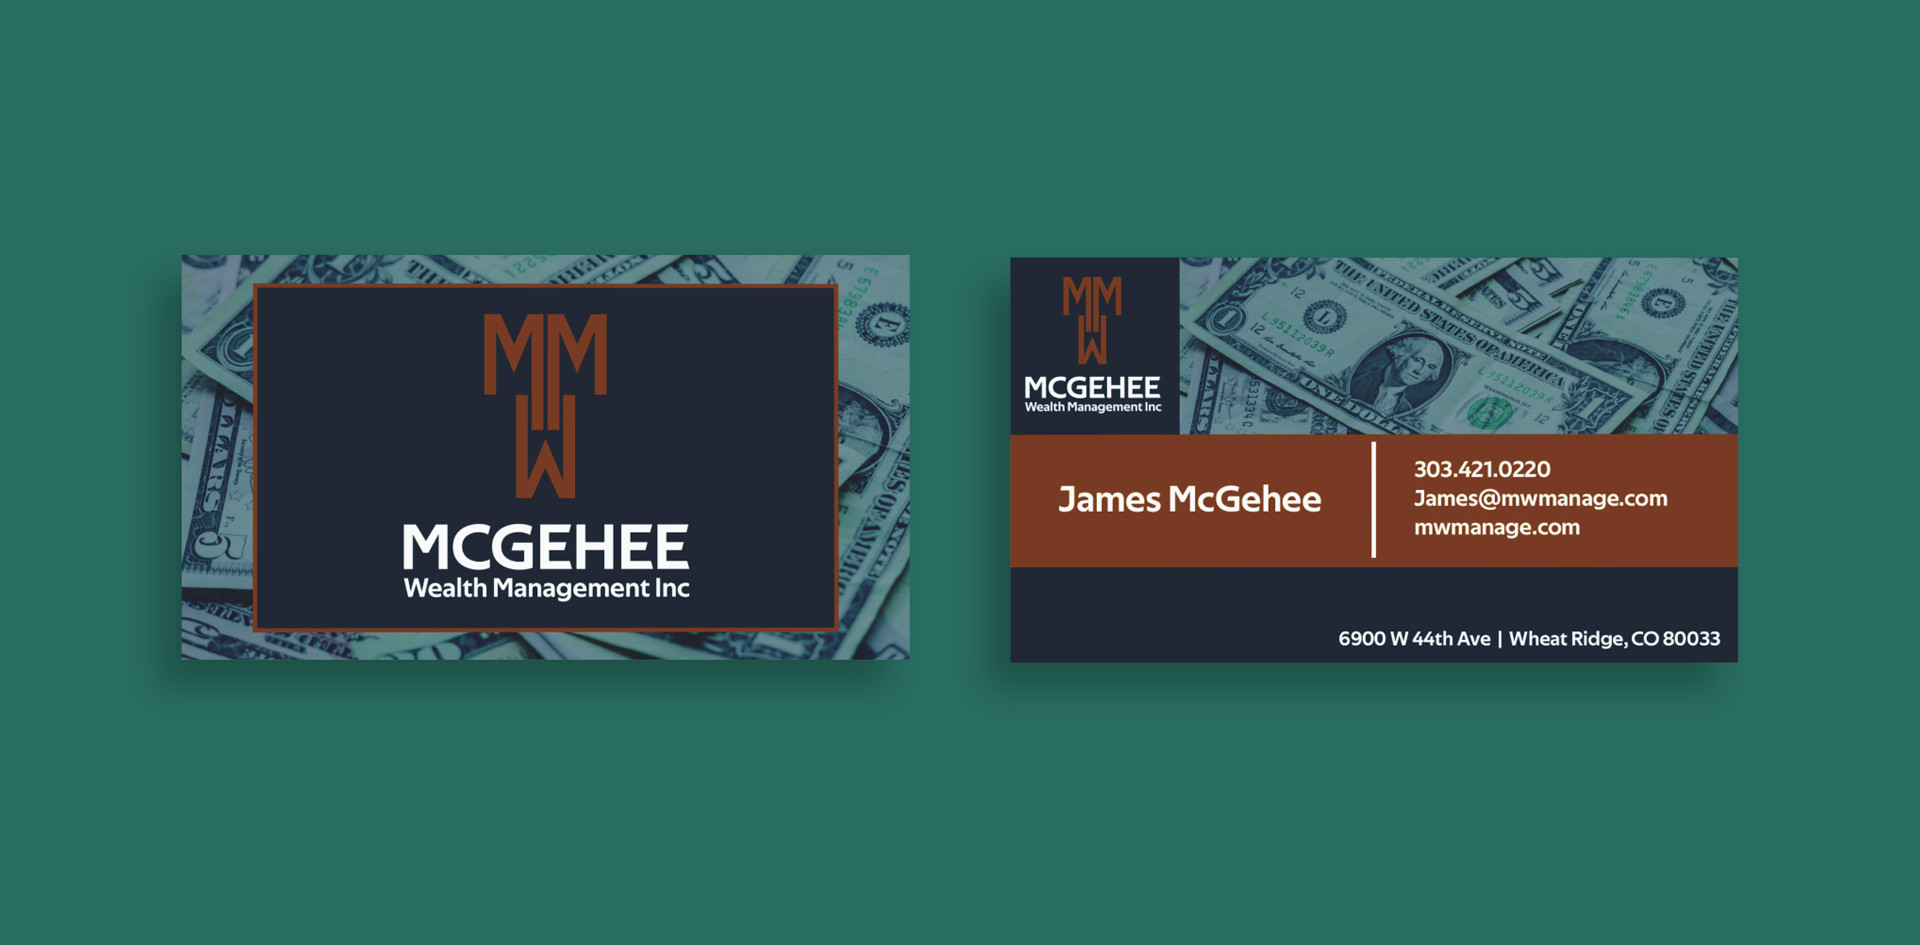 McGehee Business Cards